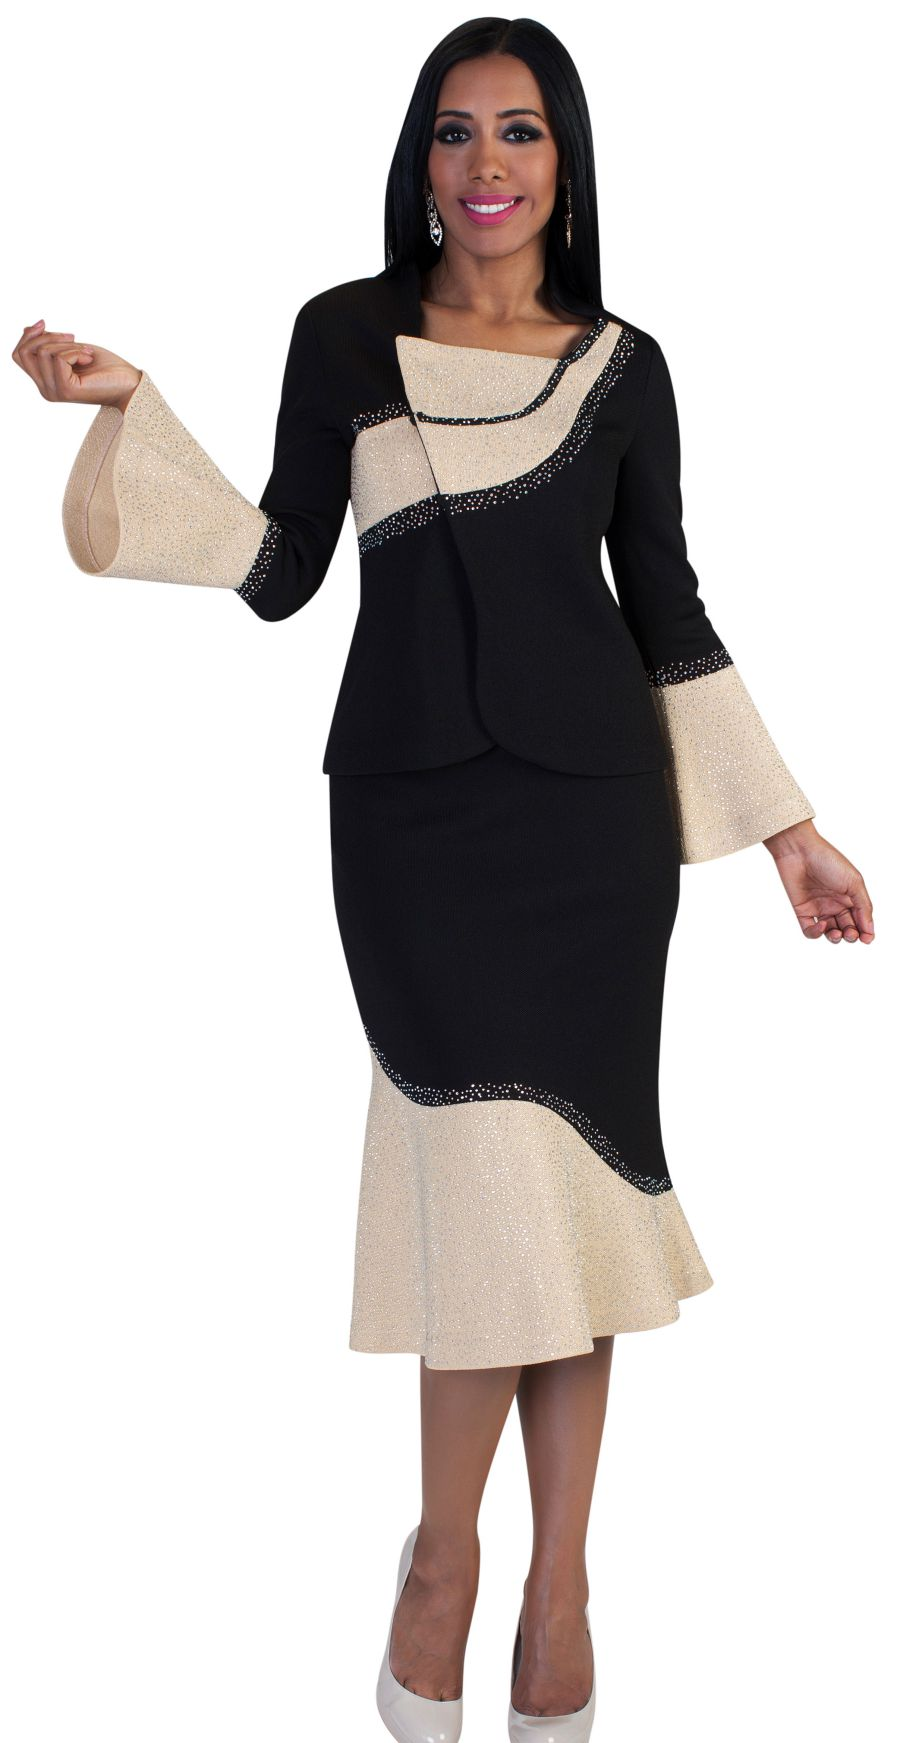 Liorah Exclusive Knit 7231-Black/Gold - Church Suits For Less